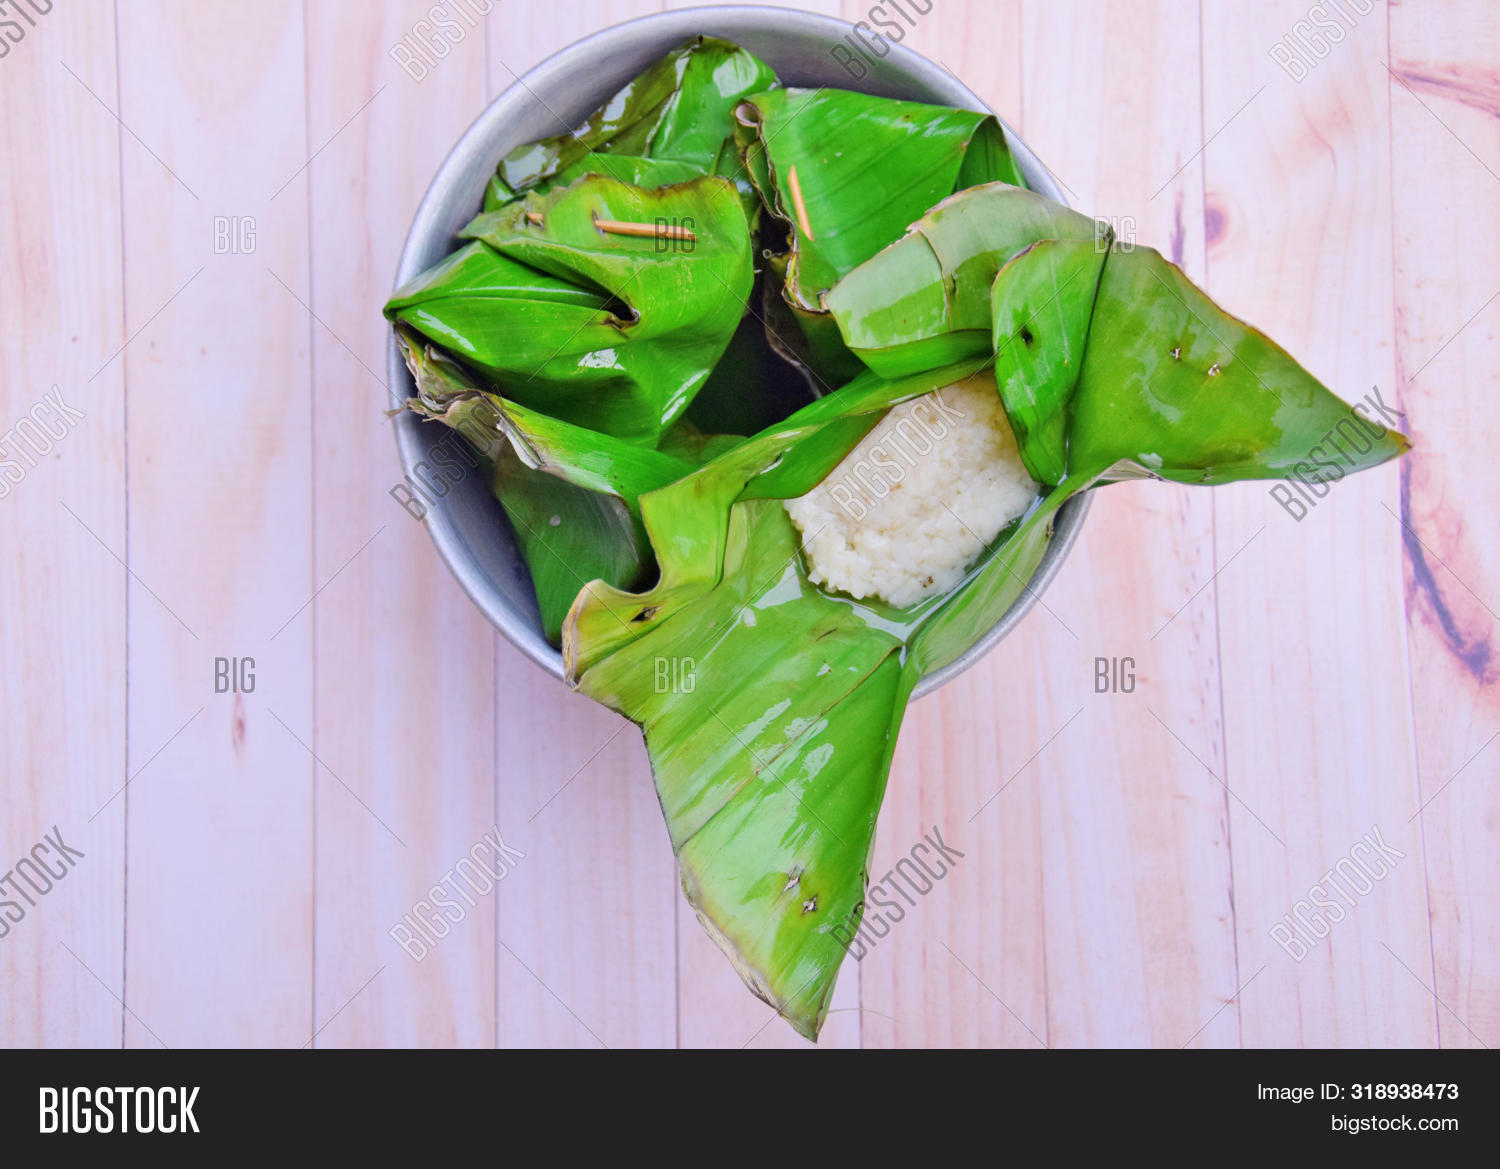 background,closeup,color,environment,foliage,food,fresh,freshness,garden,green,growth,healthy,leaf,natural,nature,organic,pattern,plant,pudding,rice,spring,sticky,summer,tape,texture,vegetable,water,white,wood